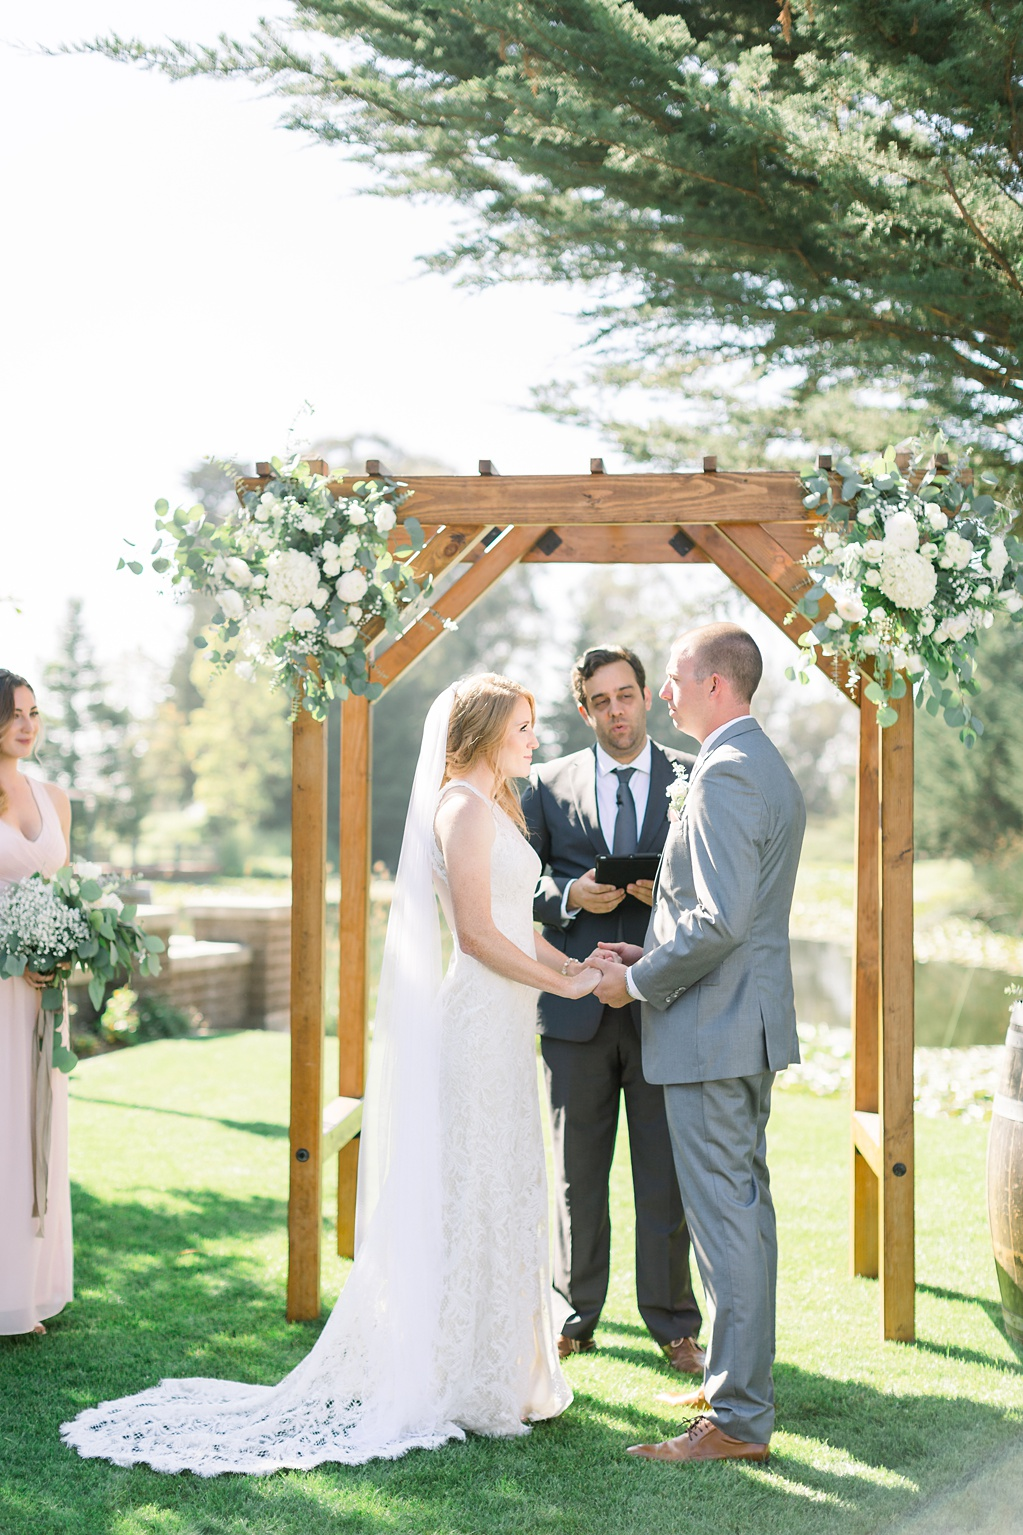 White Barn Inspired Summer Wedding In The Valley of Arroyo Grande, California by Wedding Photographer Madison Ellis. (56)